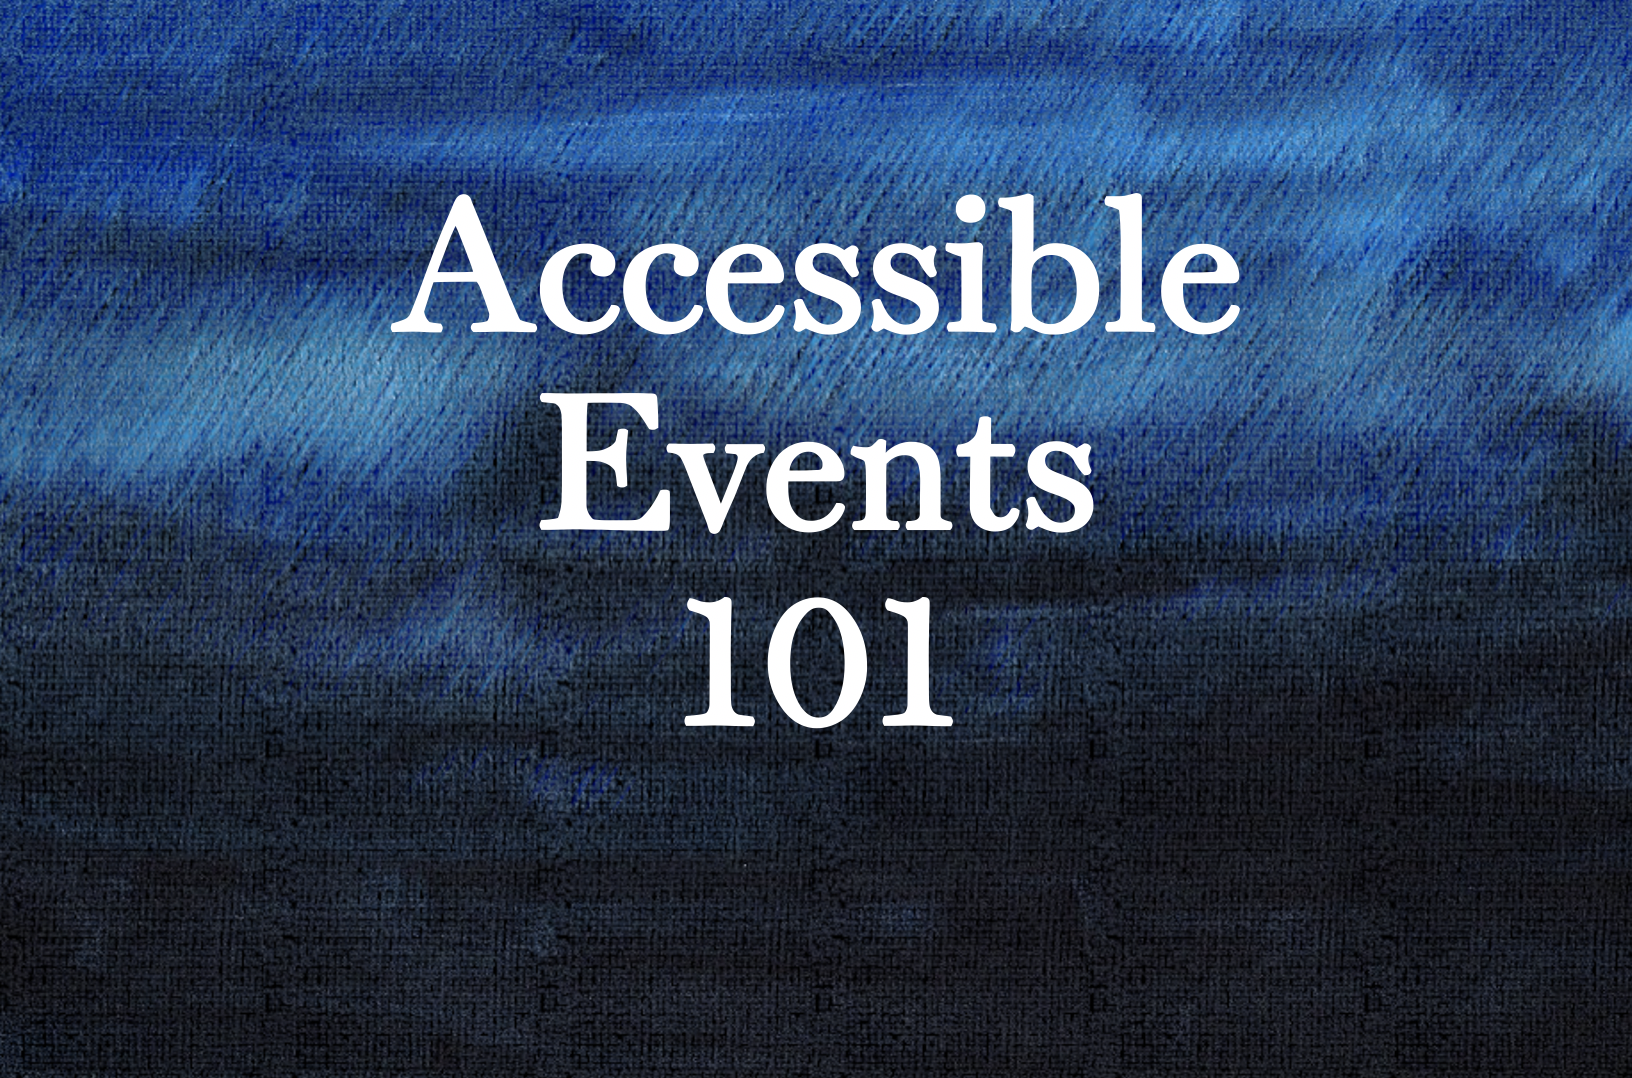 Accessible Events 101